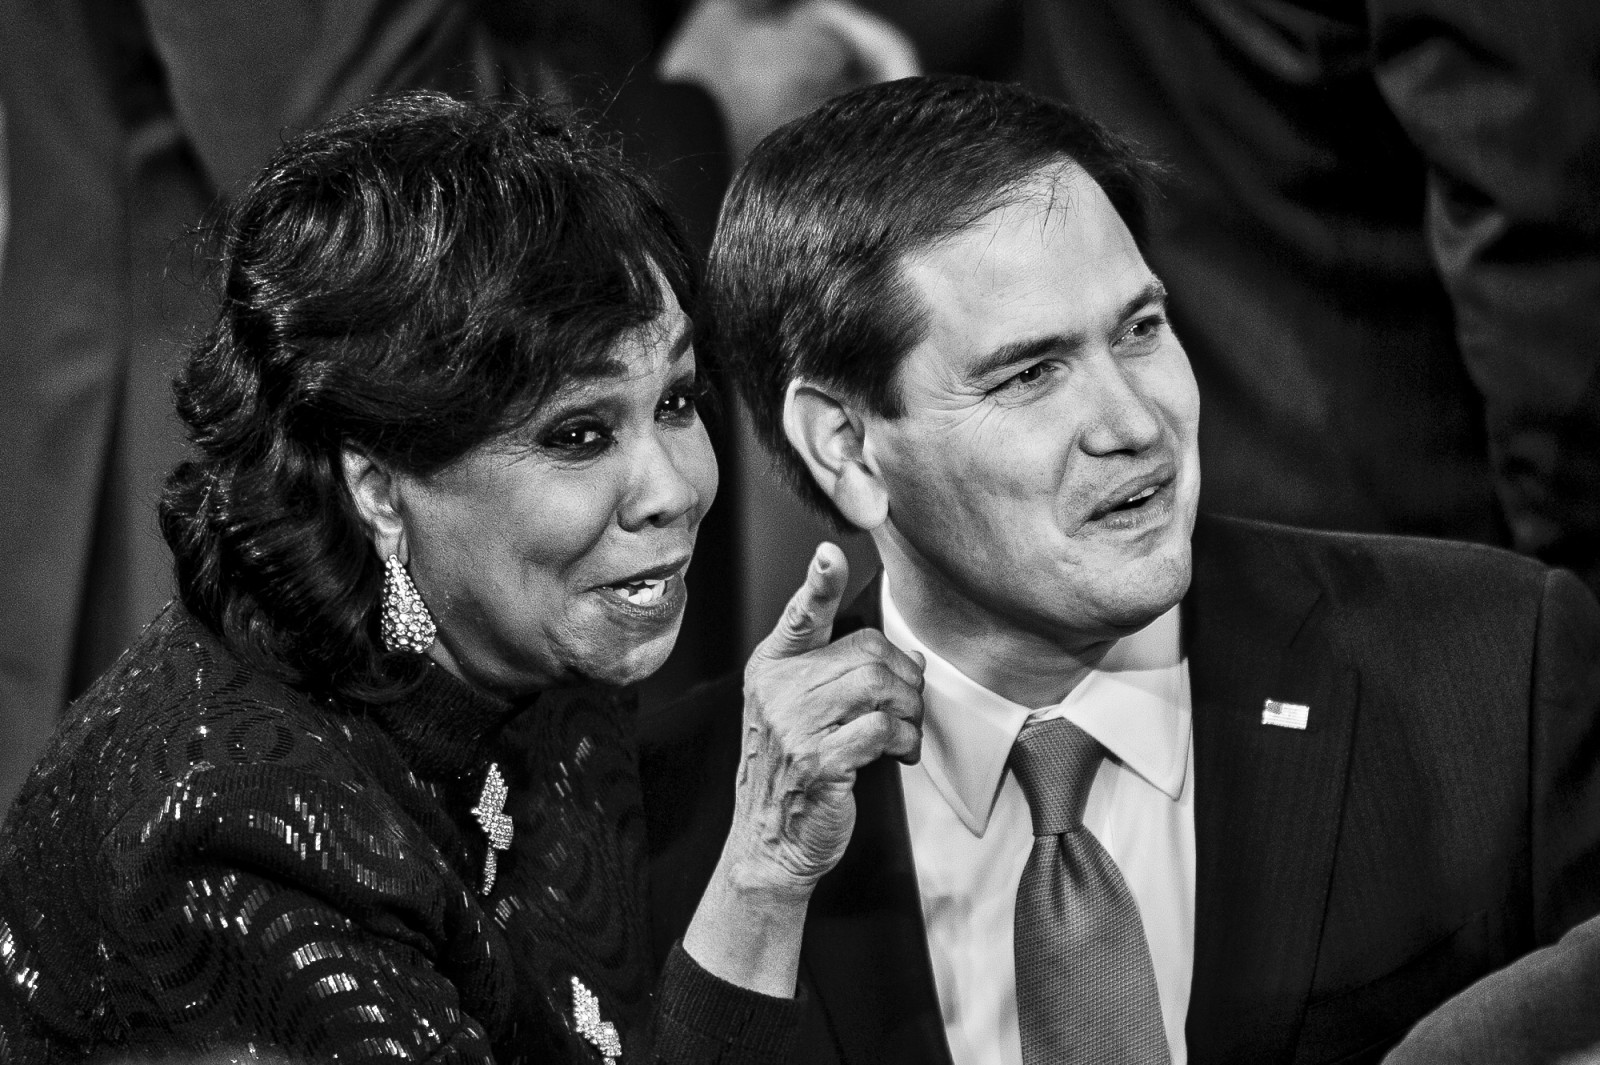 Rep. Frederica Wilson (D-FL) talks with Senator Marco Rubio (R-FL) before U.S. President Barack Obama delivers the State of the Union address to a joint session of Congress at the Capitol in Washington, District of Columbia, U.S., on Tuesday, Jan. 20, 2015.